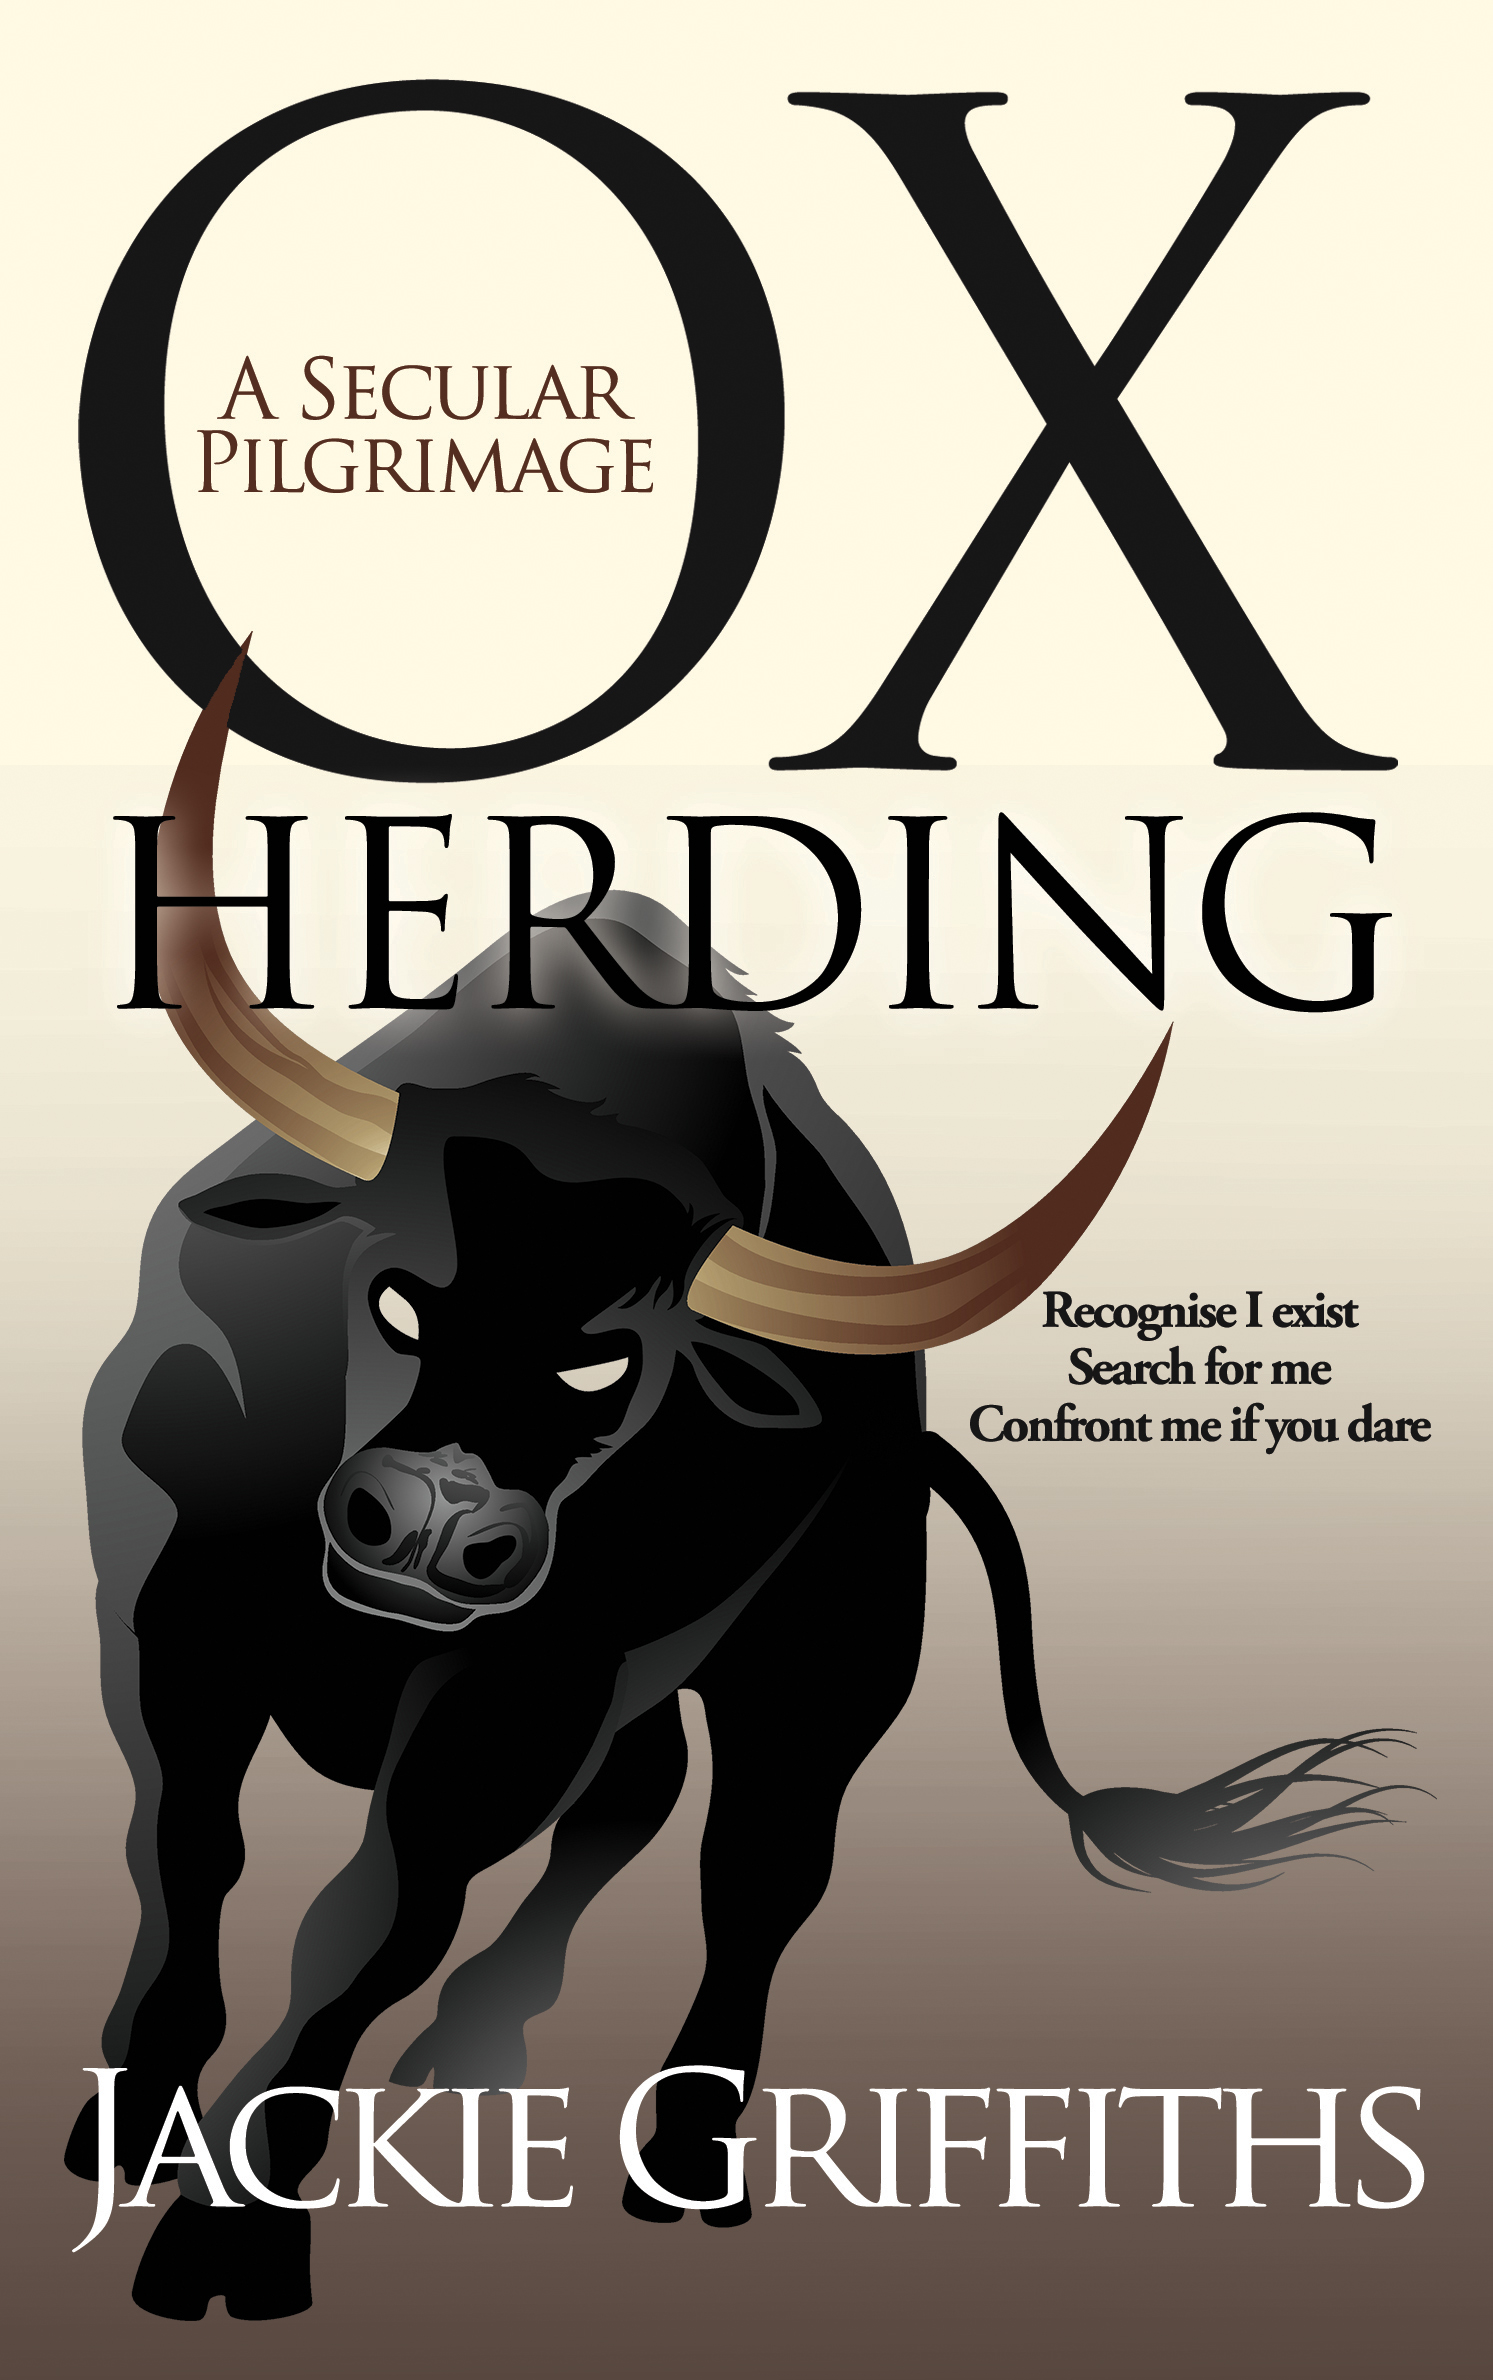 Ox Herding: A Secular Pilgrimage Jackie Griffiths